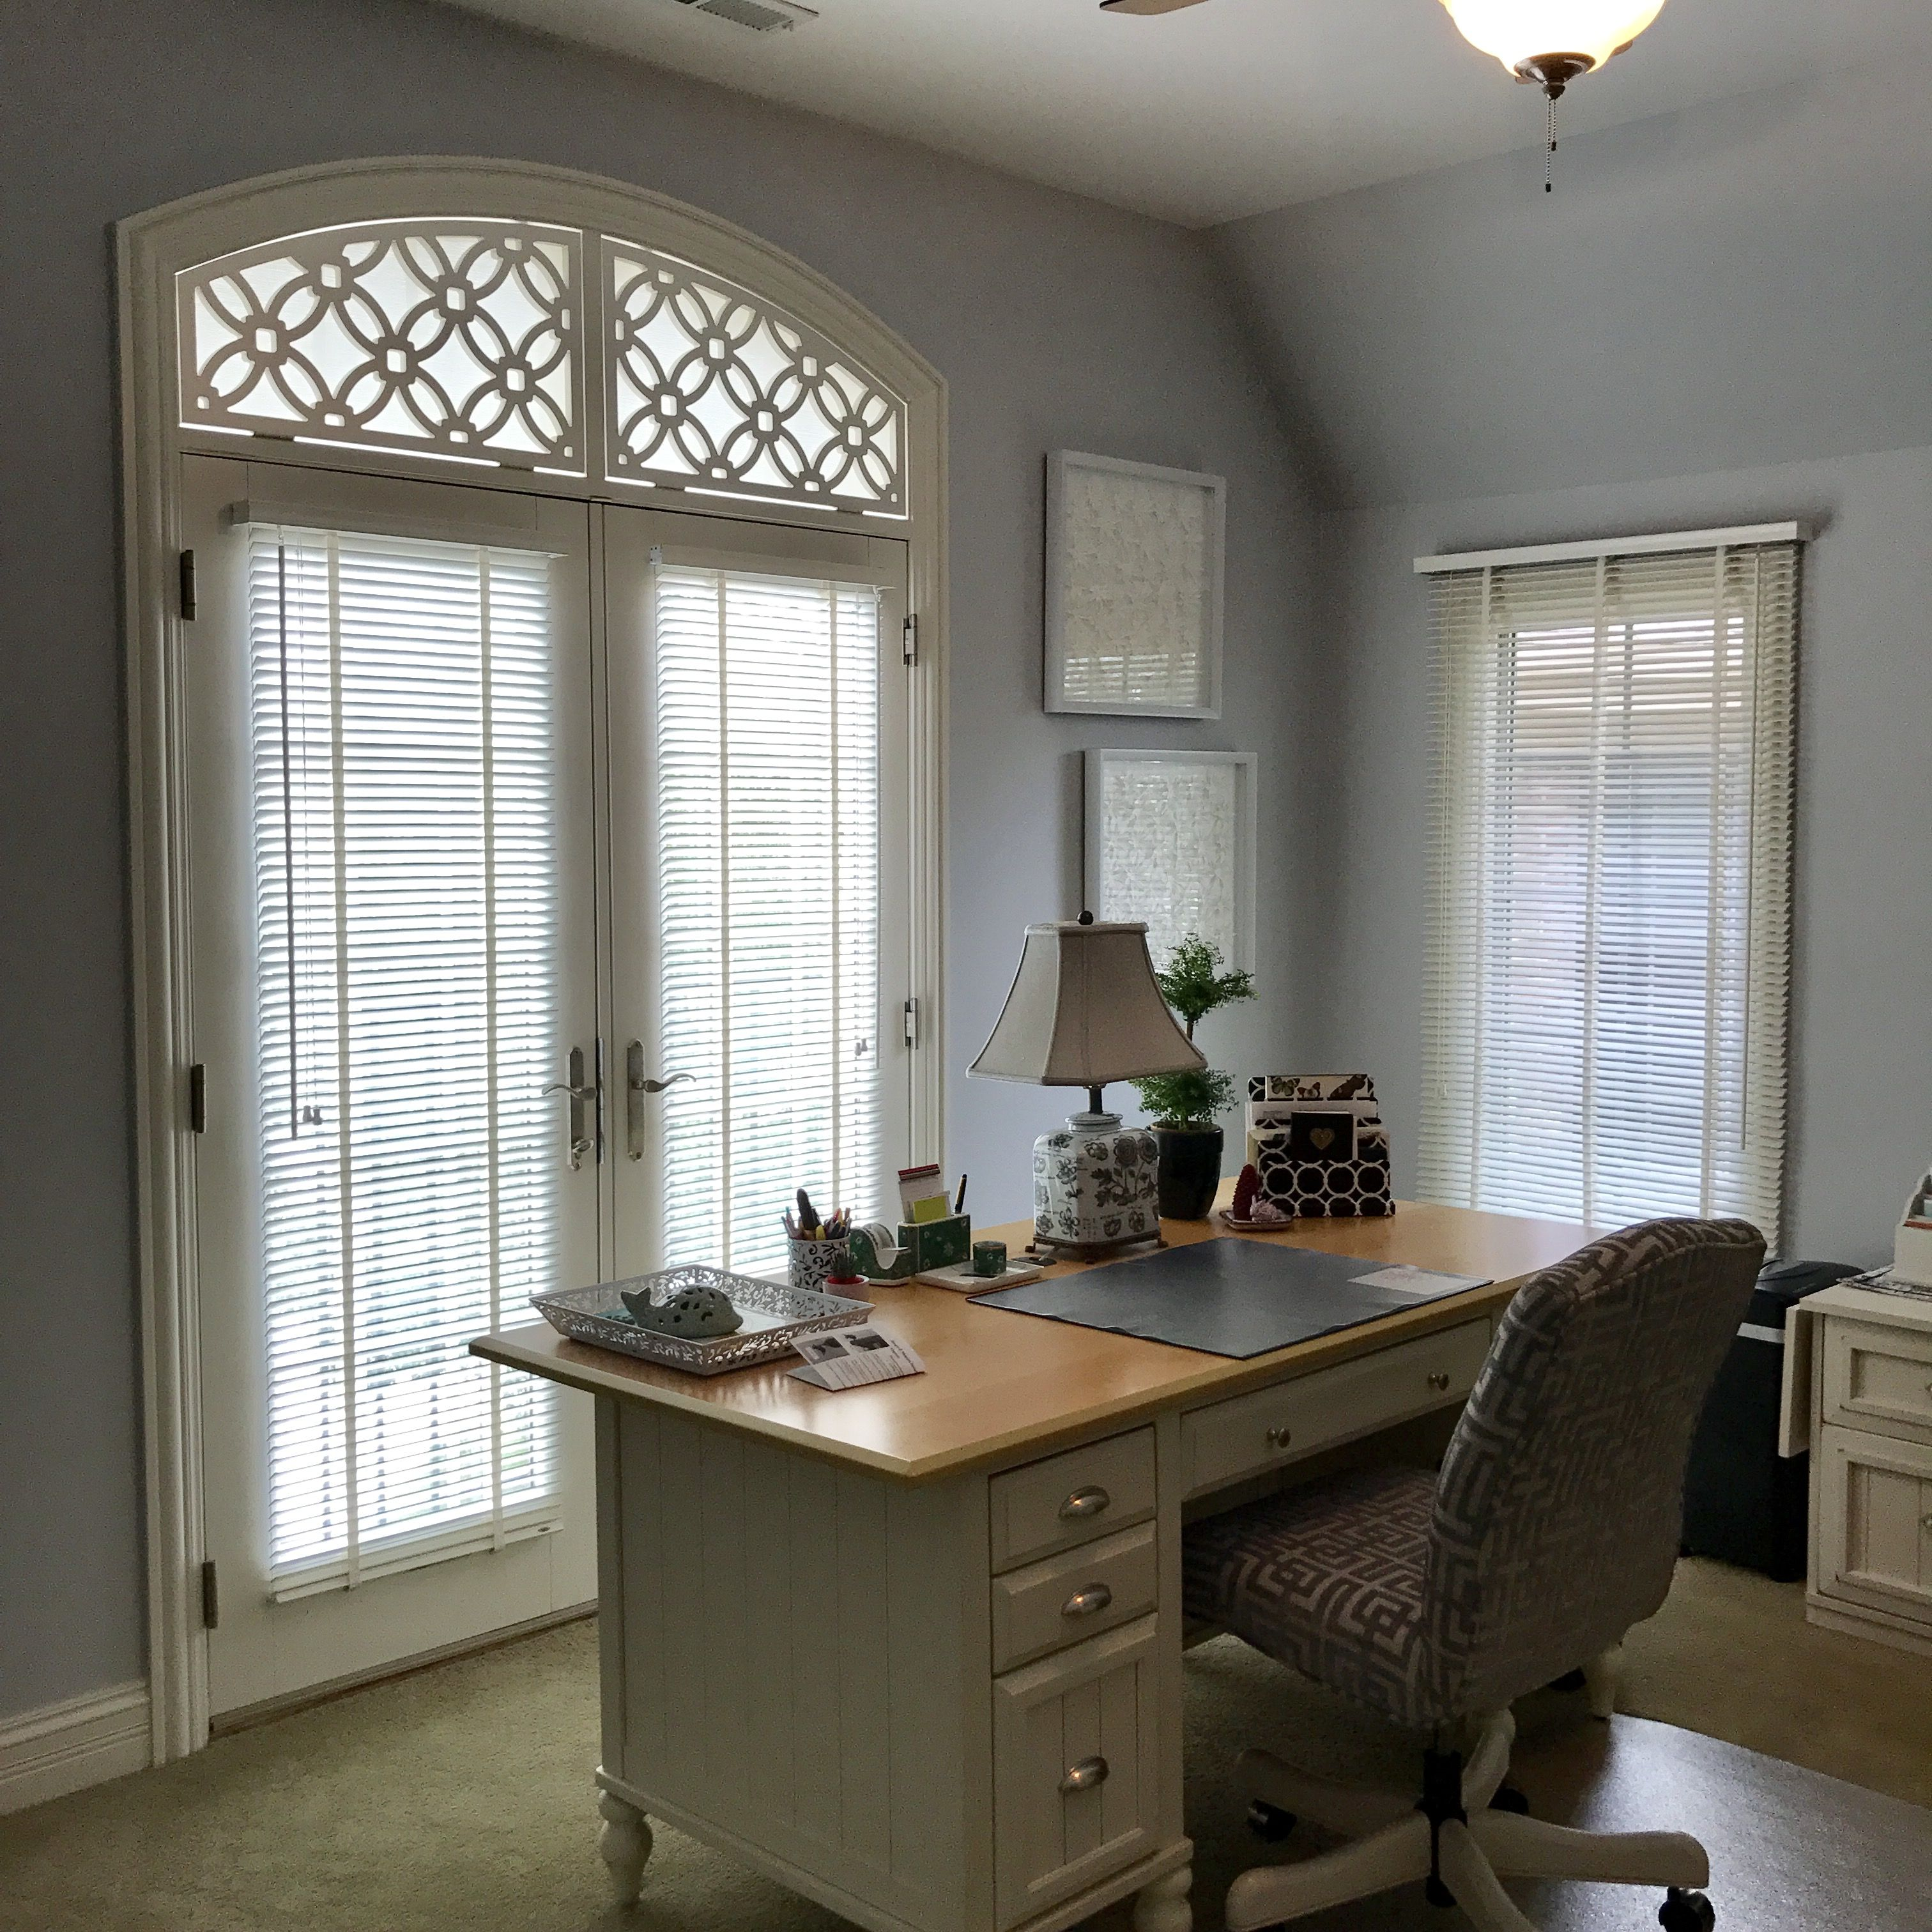 Tableaux With Screen Shade For Glam Home Office In Vernon Hills IL.